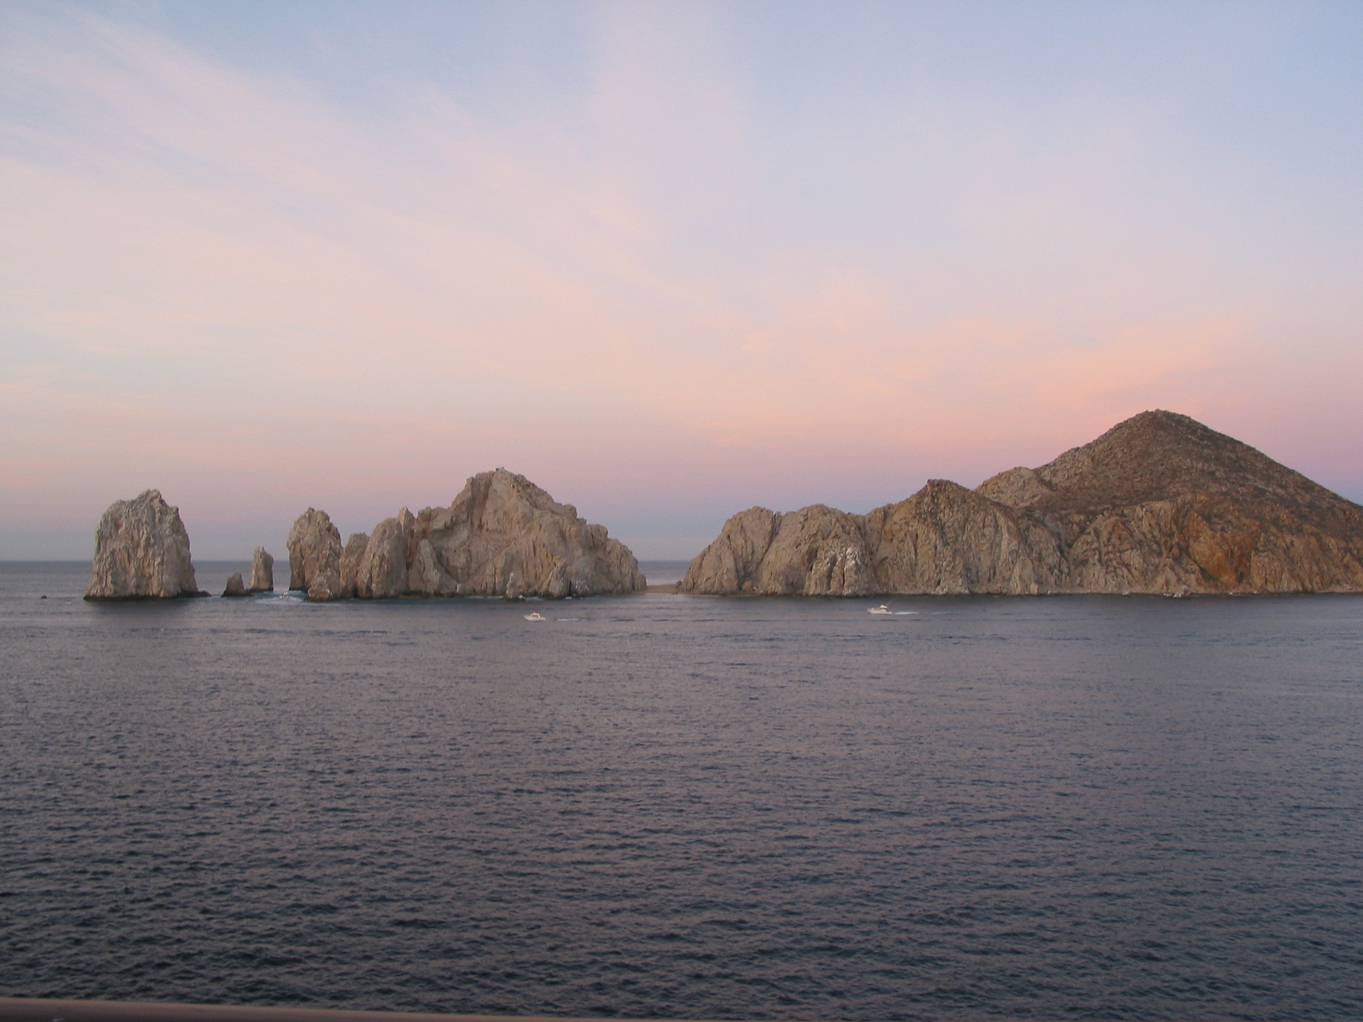 Rock formations at Cabo San Lucas from in the Sea of Cortez. See more in the Scuba/Snorkling section of the gallery!